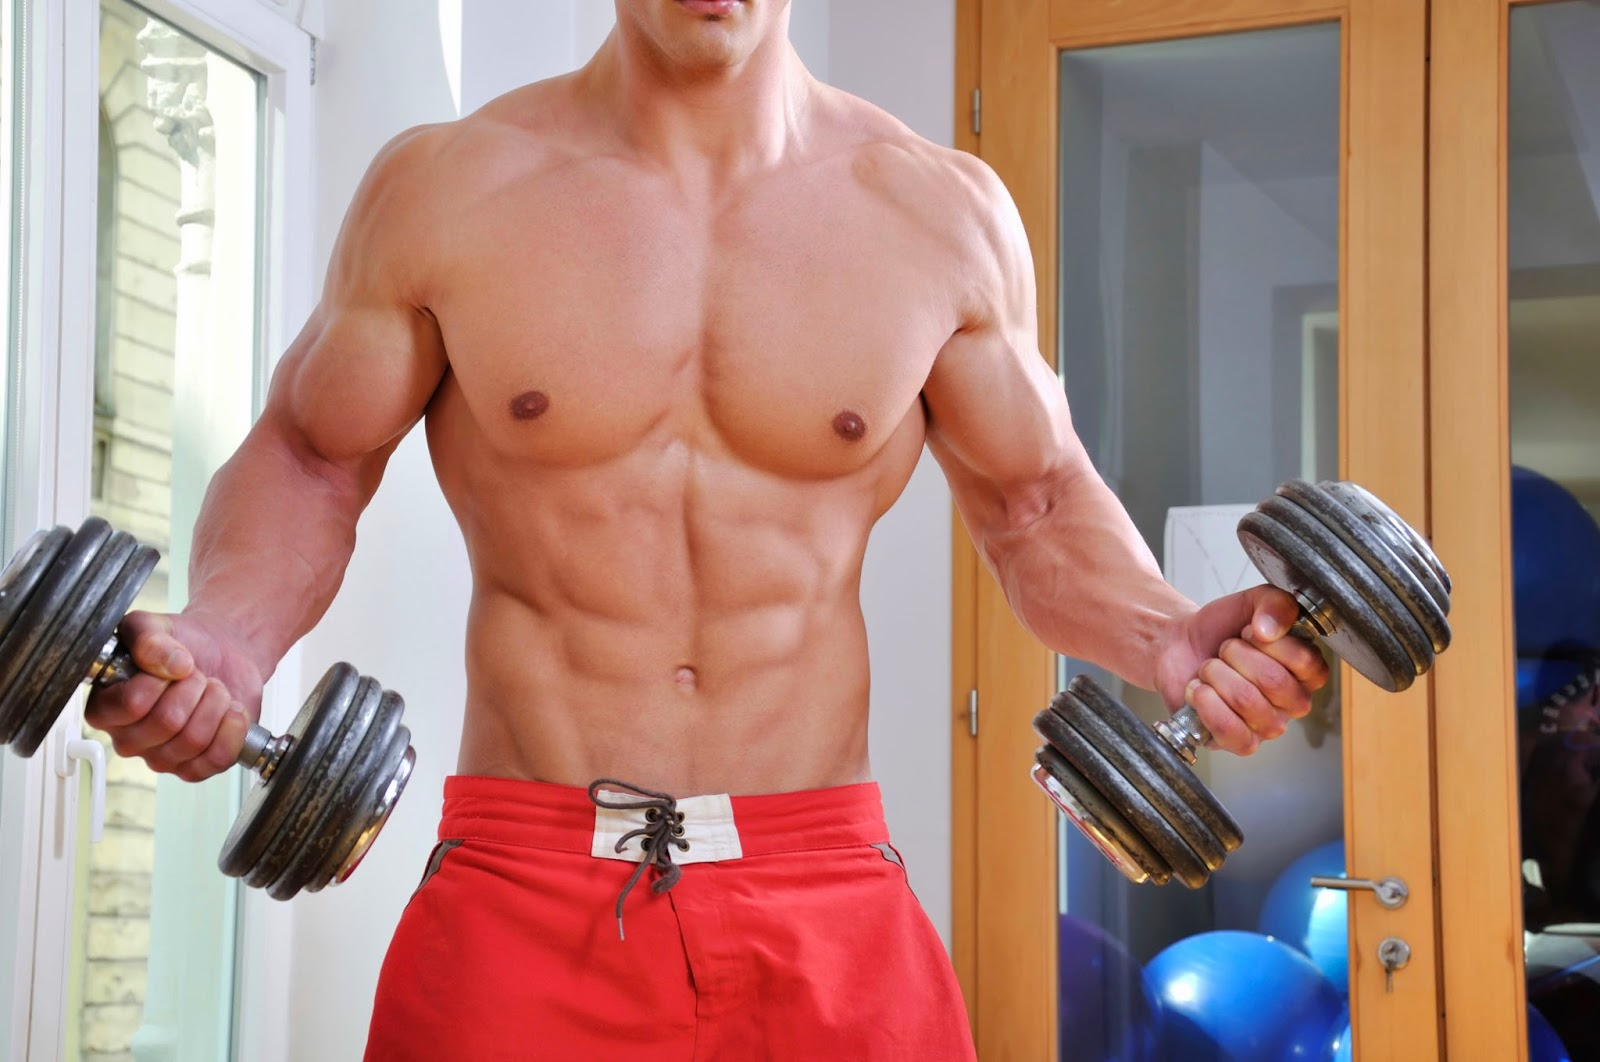 Workout Tips to Get Ripped